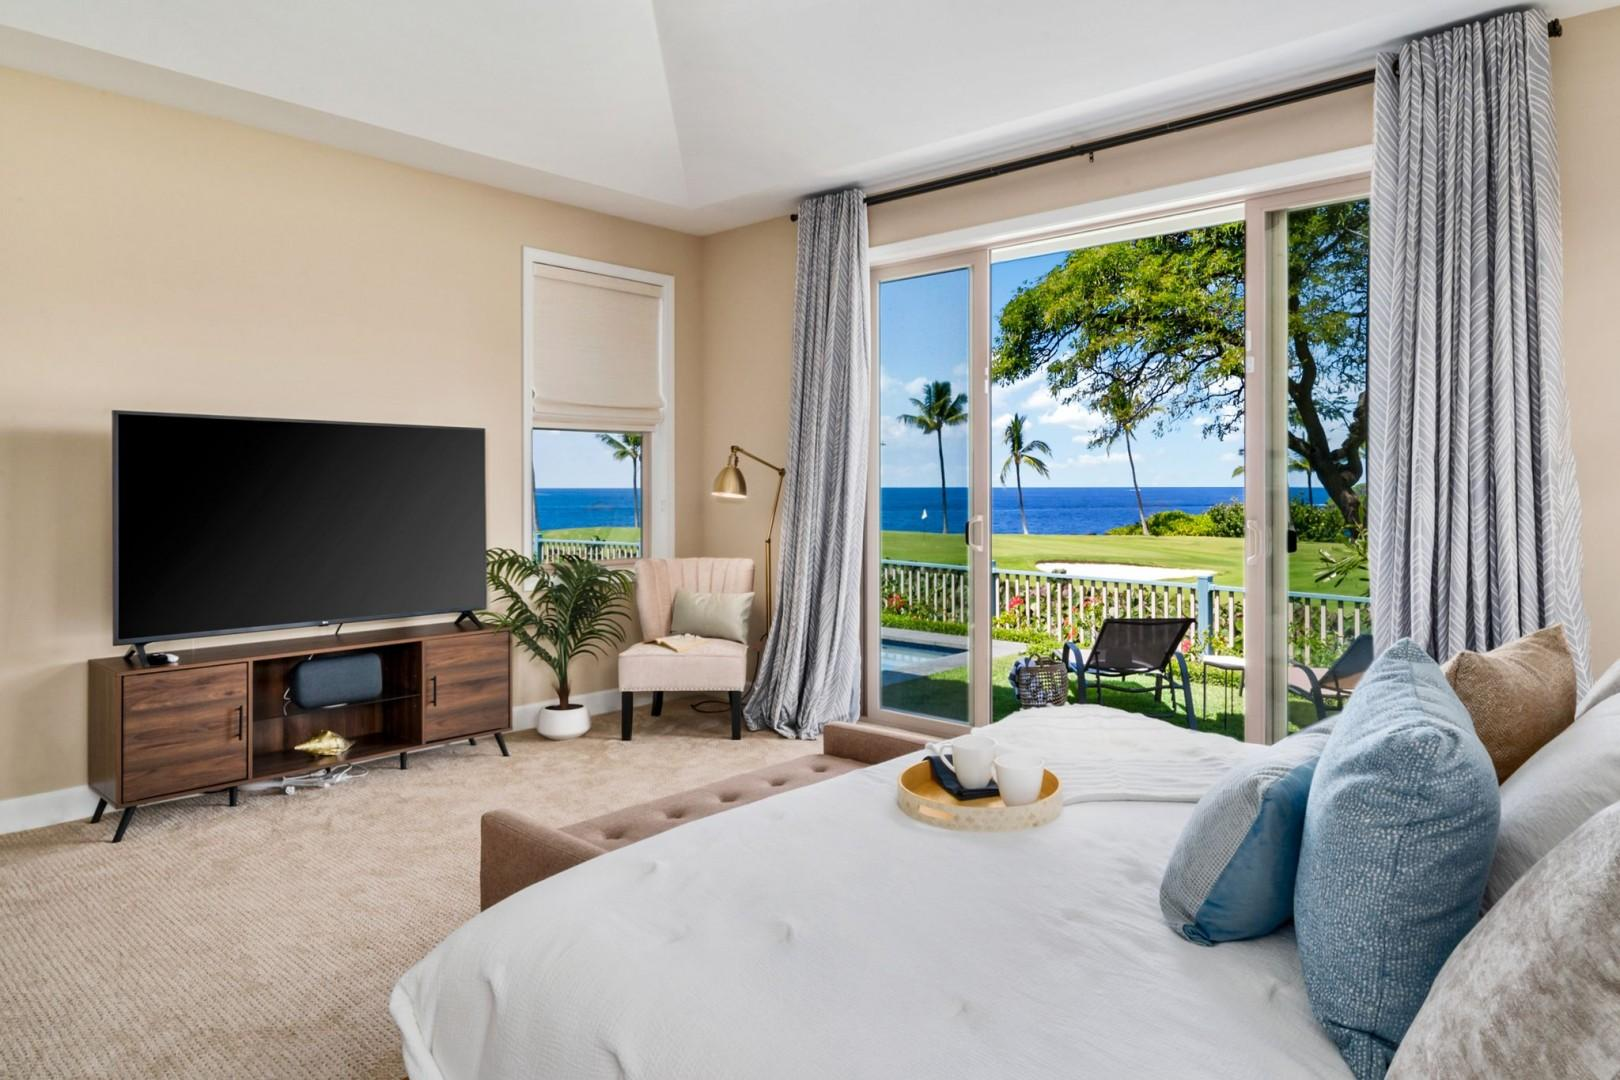 Take in the Ocean view while laying in bed!